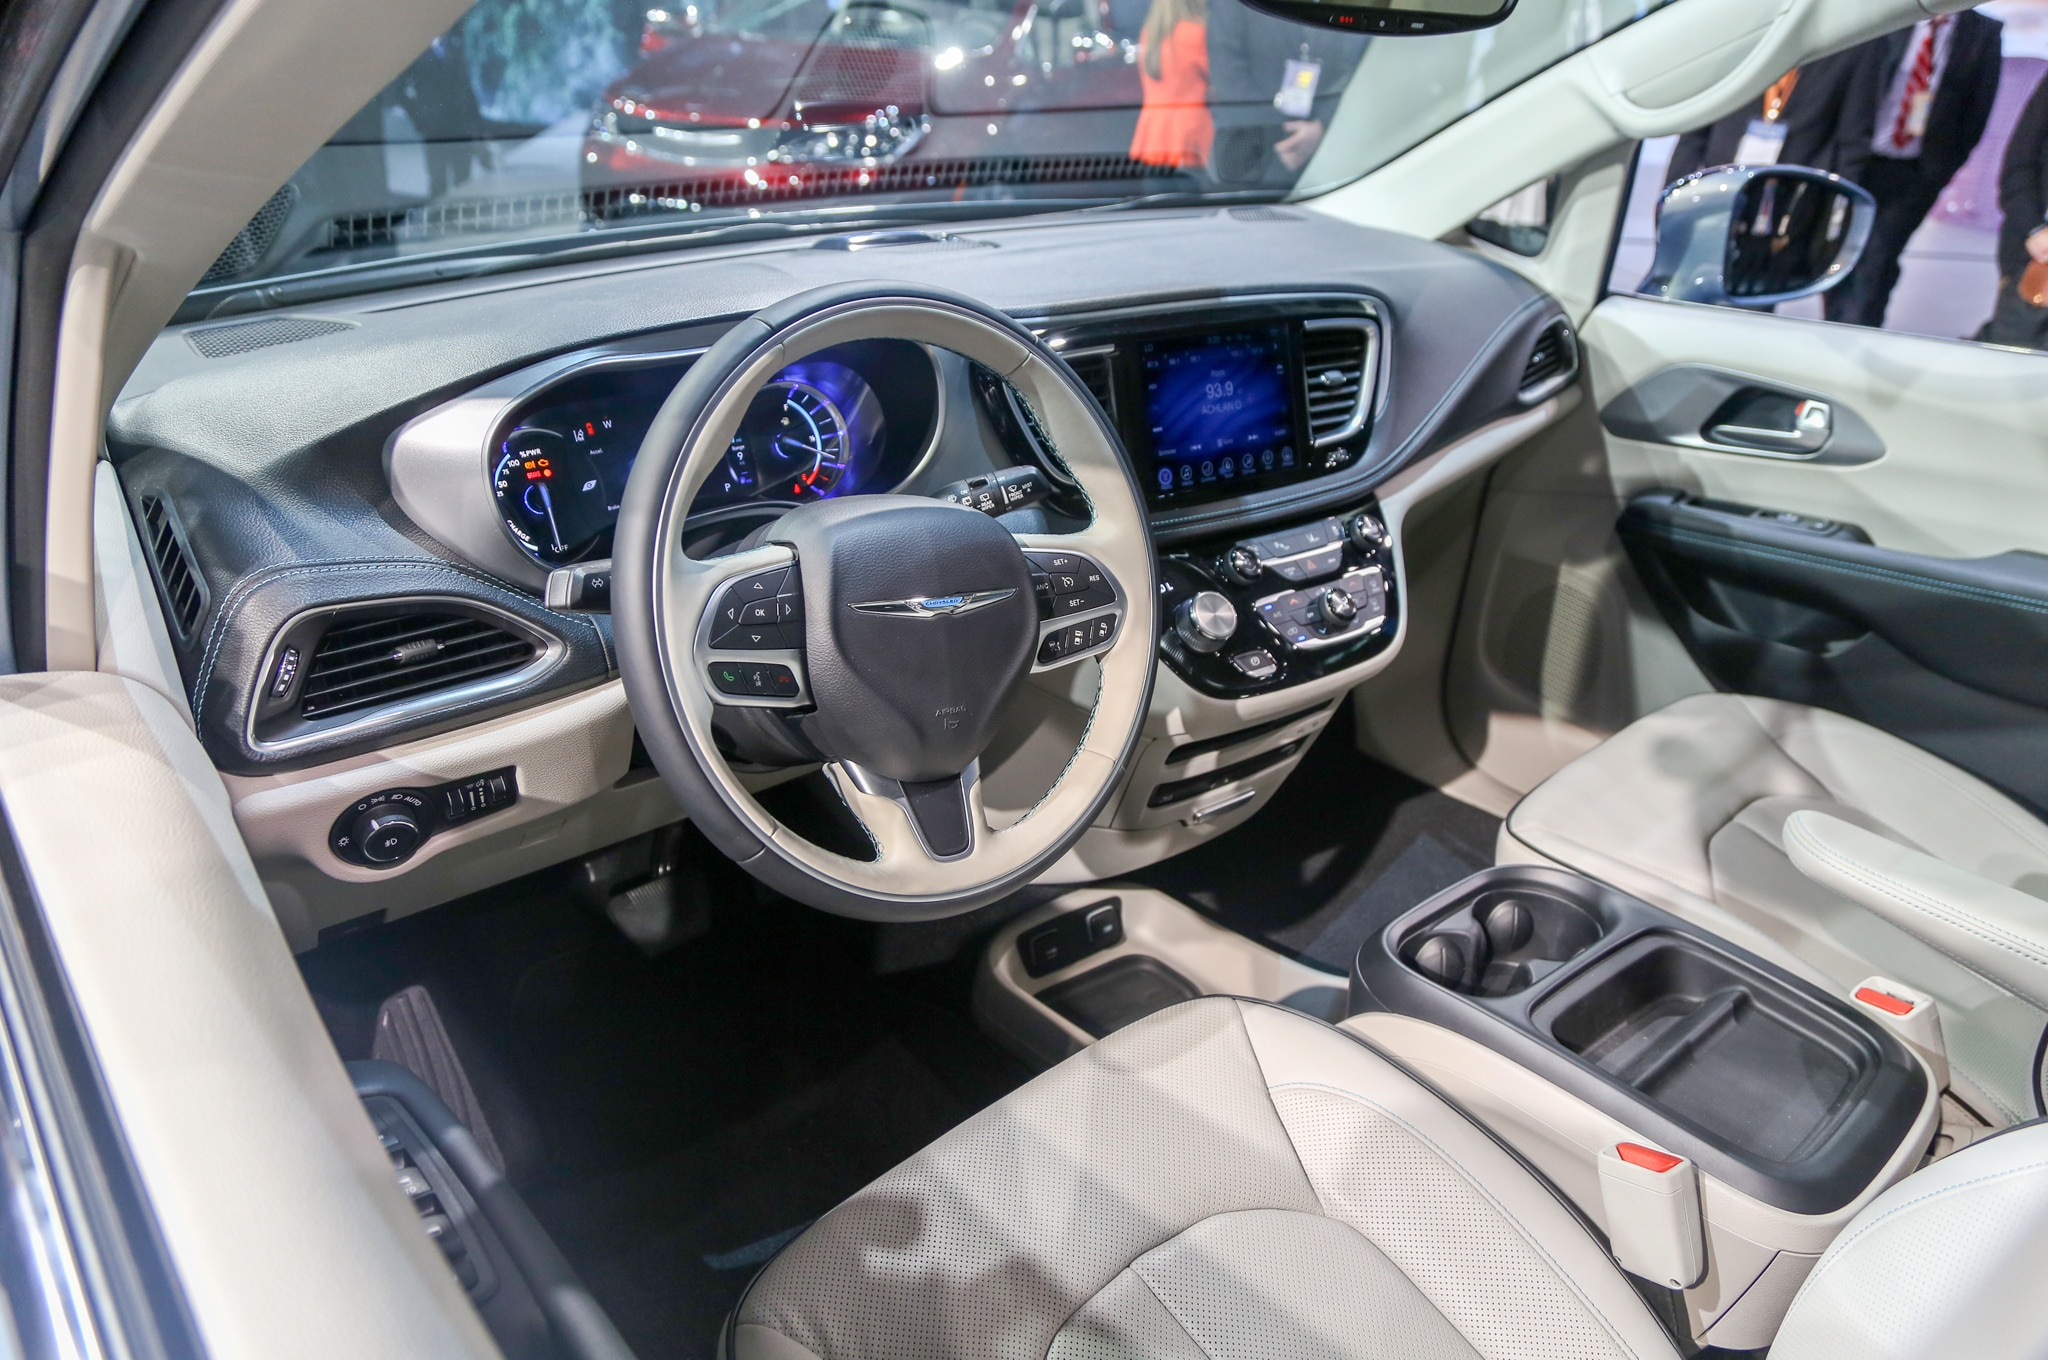 2017 chrysler pacifica first drive roadtest review - Interior pictures of chrysler pacifica ...